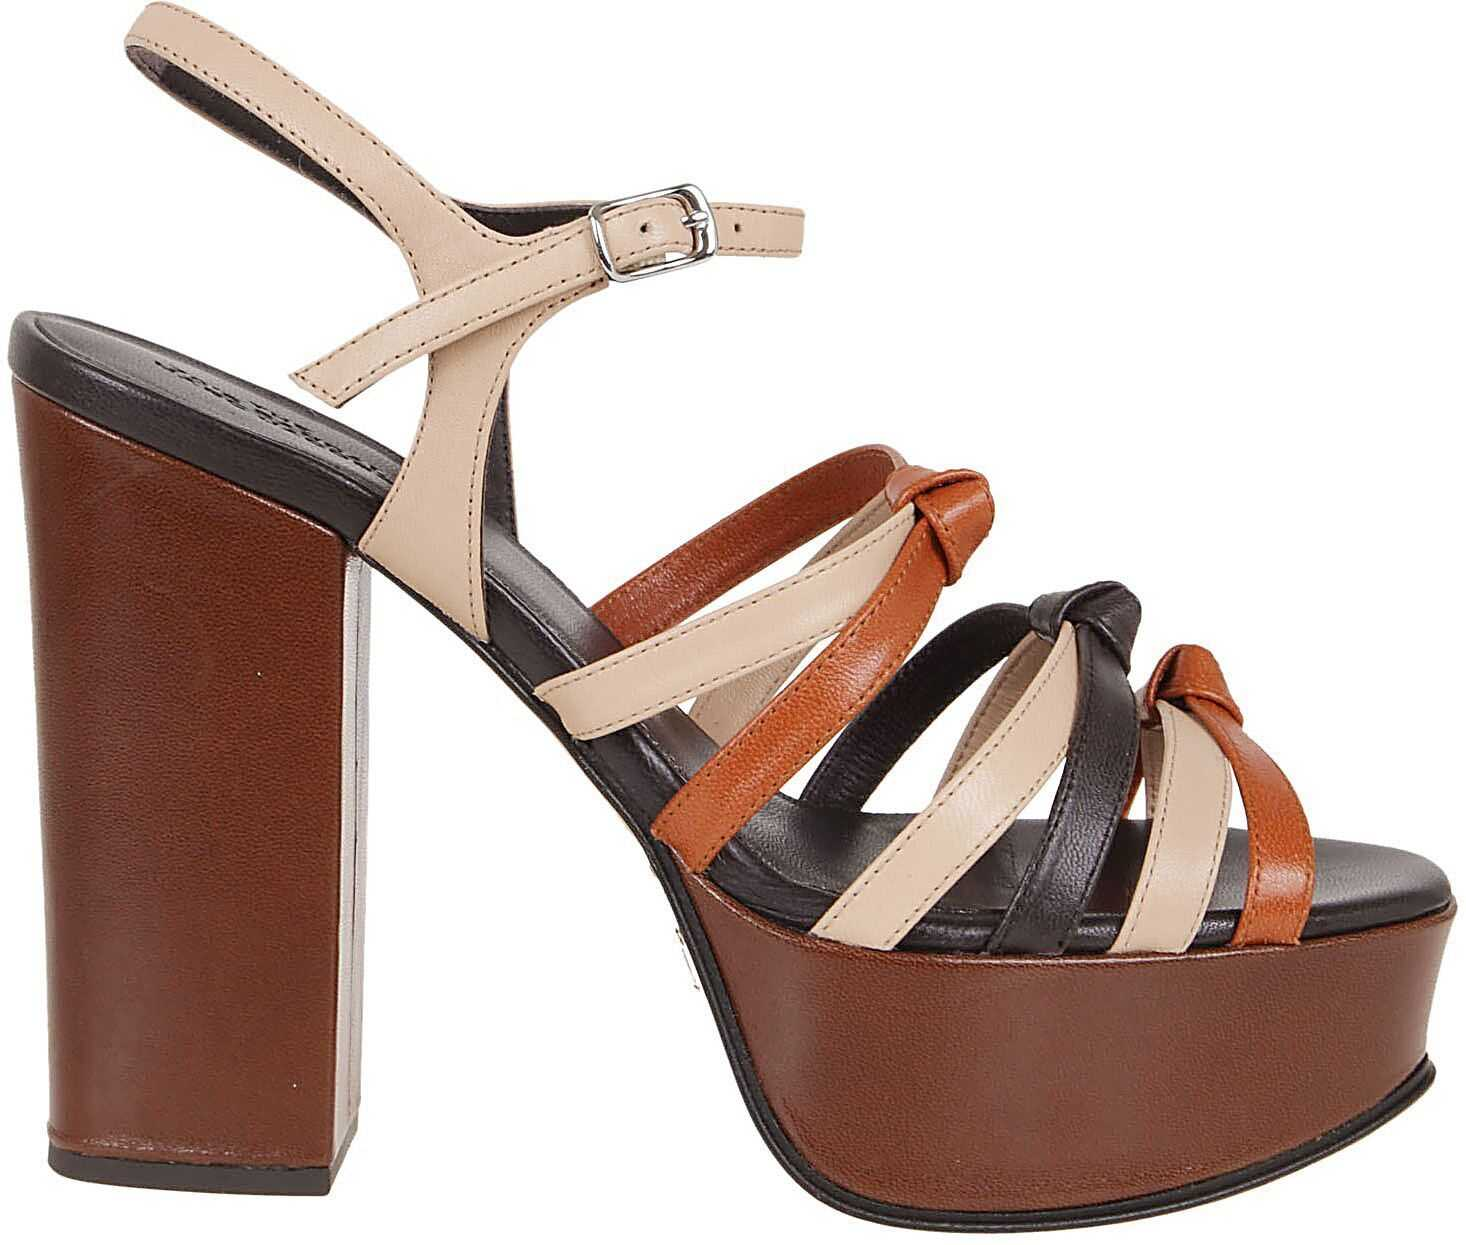 Marc Jacobs Leather Sandals BEIGE